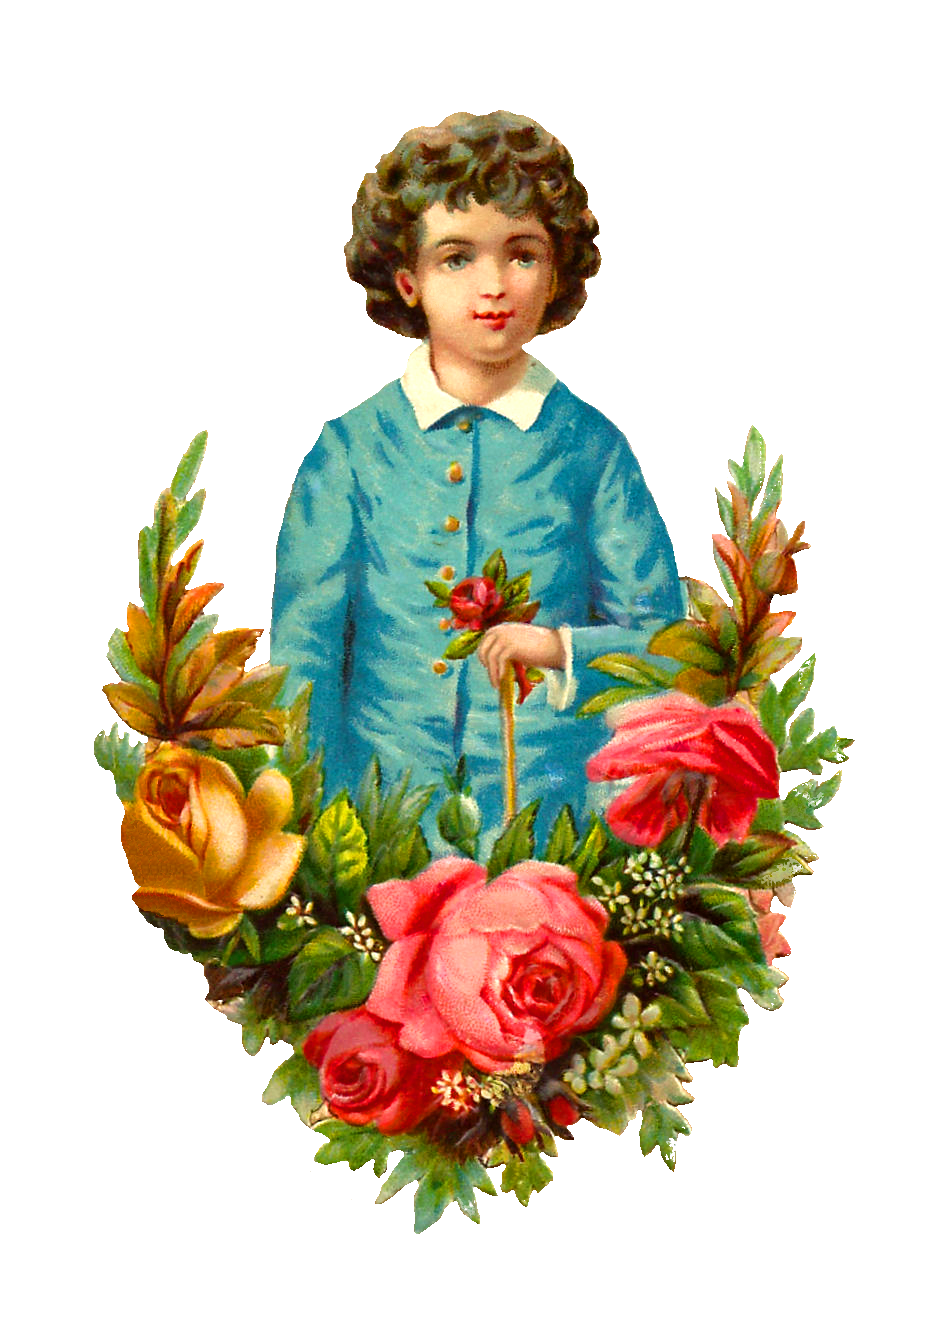 clipart girl holding flowers - photo #44